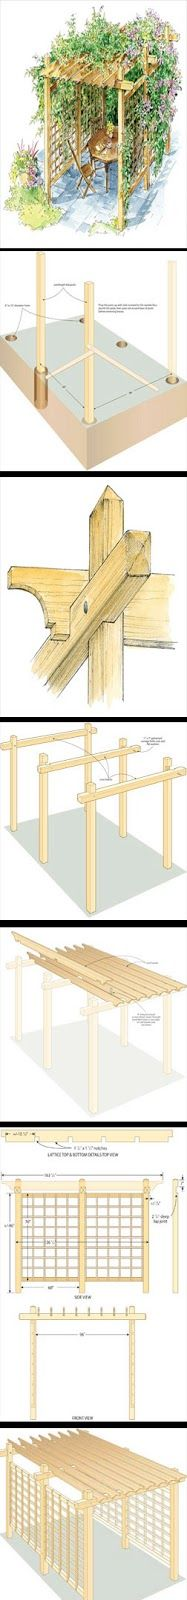 These step-by-step plans will show you how to build a pergola to create your own backyard shade. The finished product will add stylish definition and shape to your yard and garden. From MOTHER EARTH NEWS magazine.